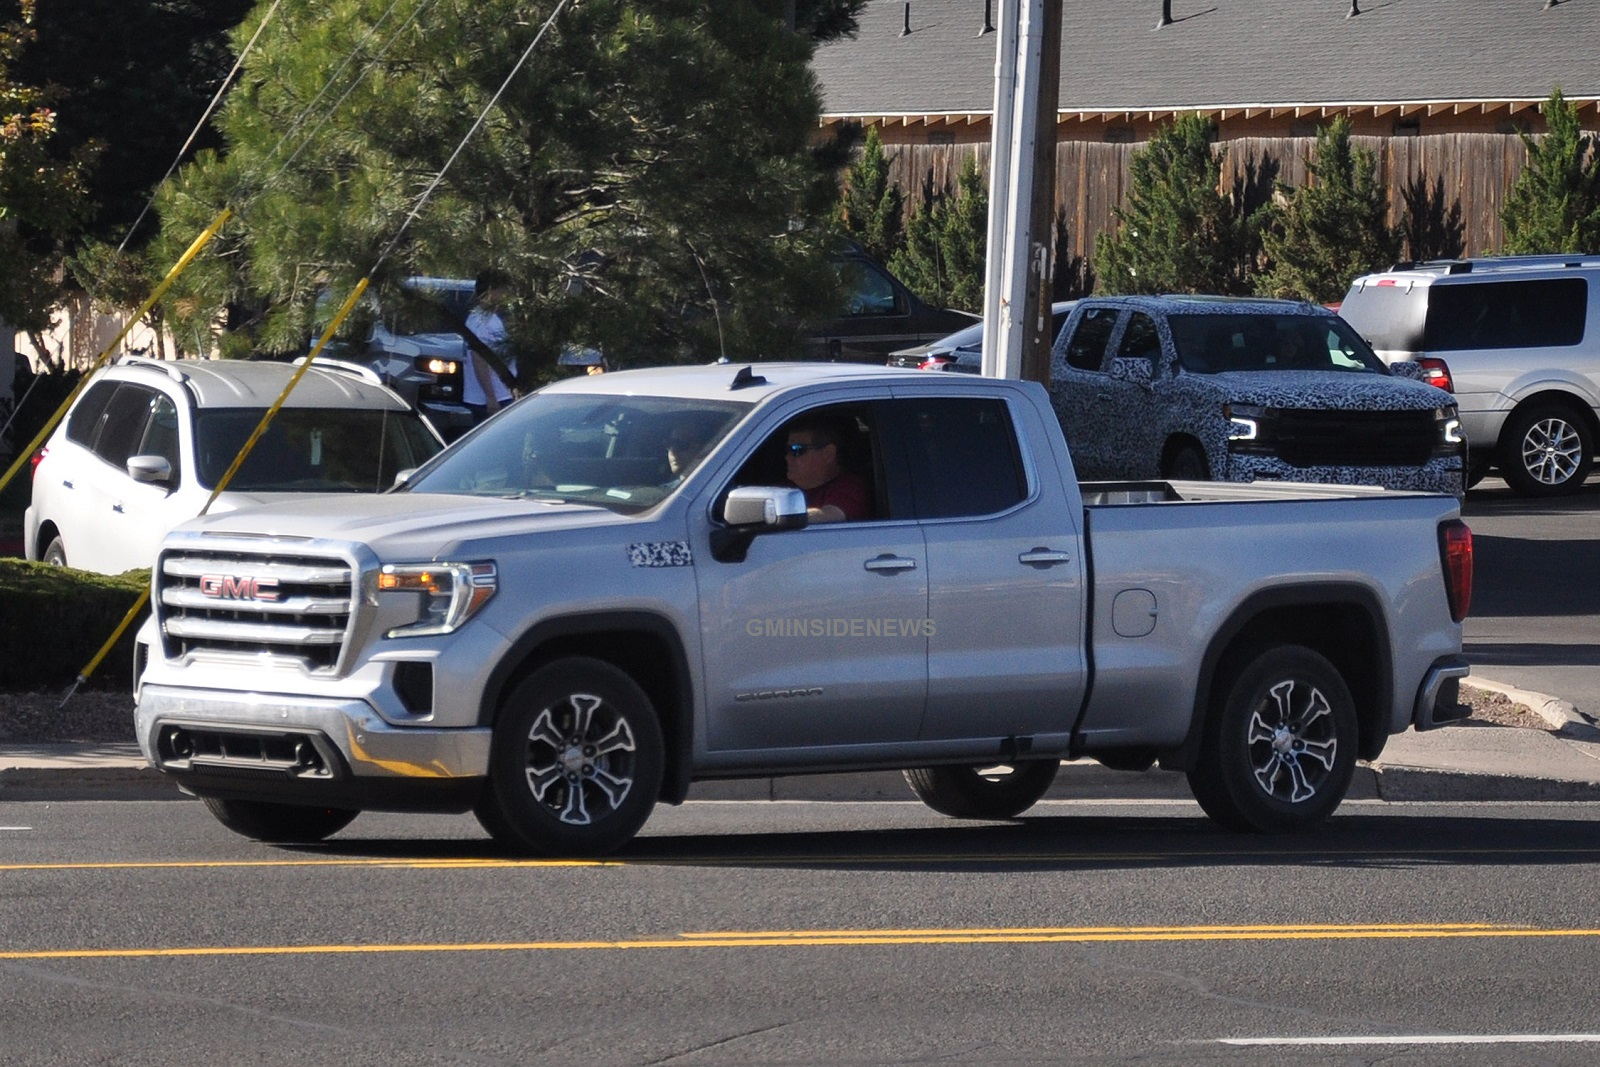 2019 Gmc Sierra Elevation Edition - GMC Cars Review ...